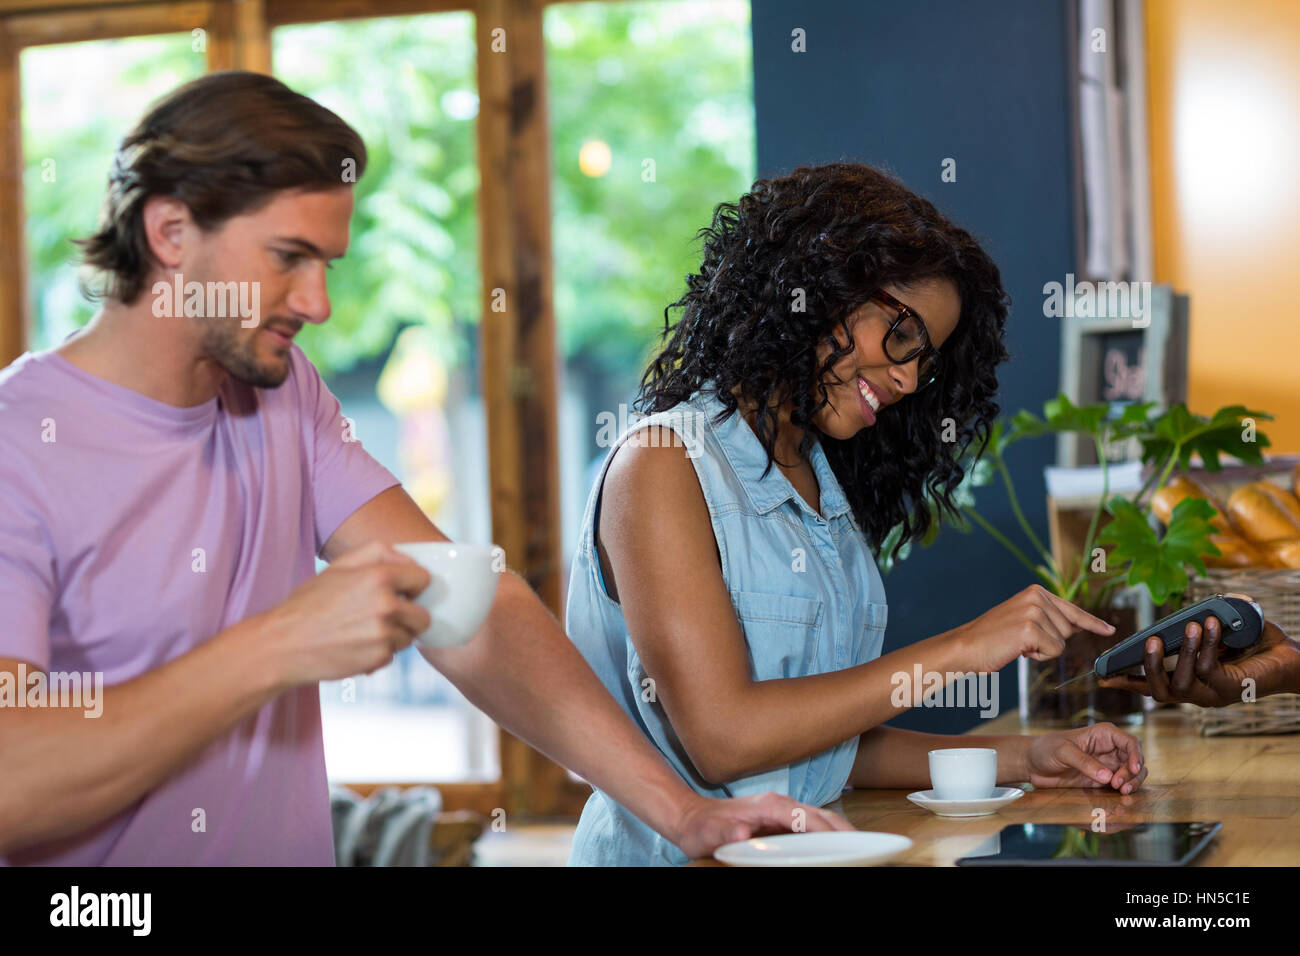 Woman entering pin code on credit card reader at counter in café - Stock Image